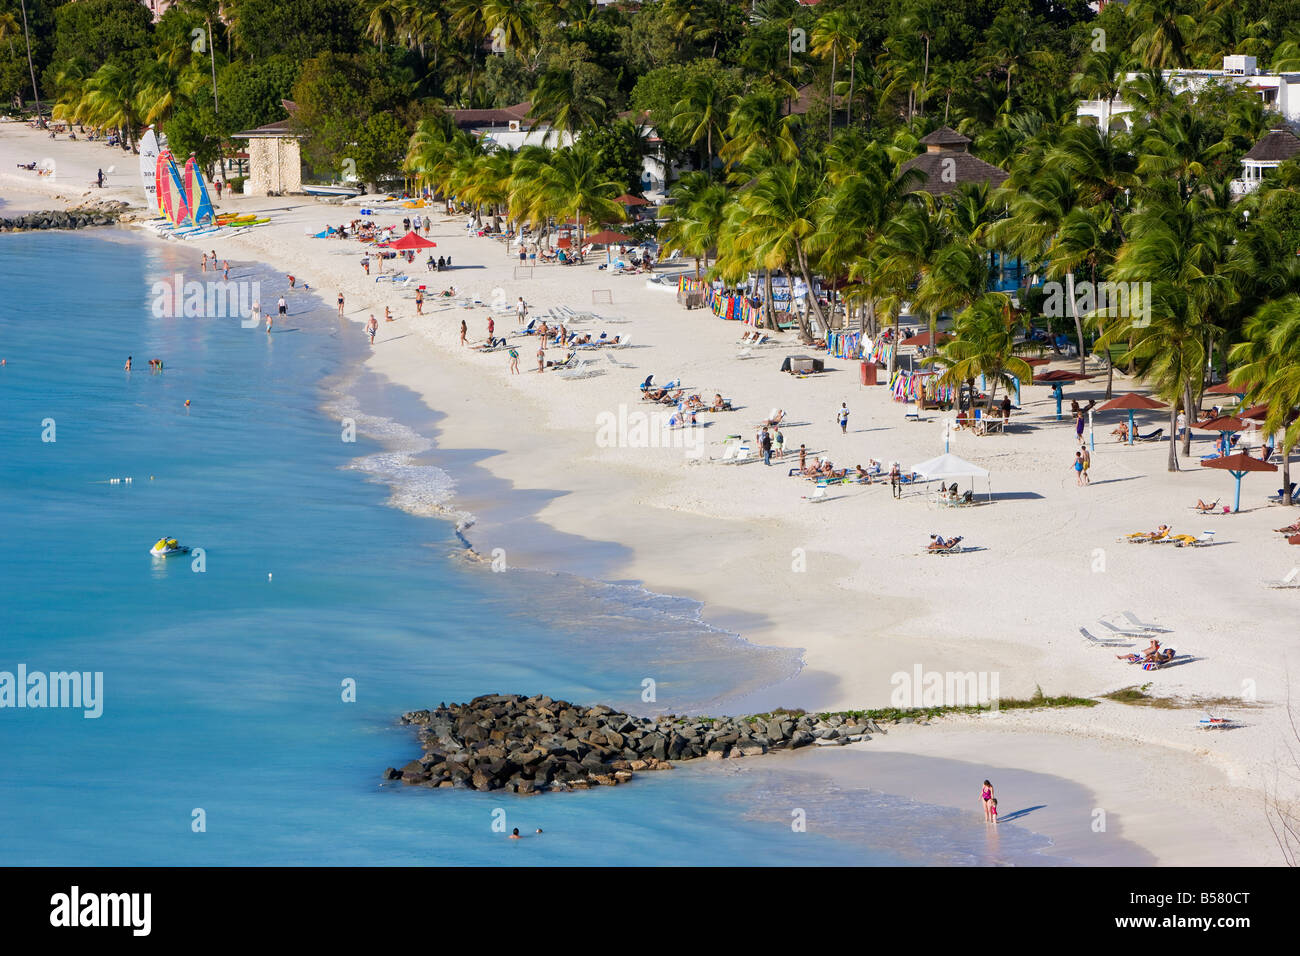 Elevated view over Jolly Harbour and Jolly Beach, Antigua, Leeward Islands, West Indies, Caribbean, Central America - Stock Image